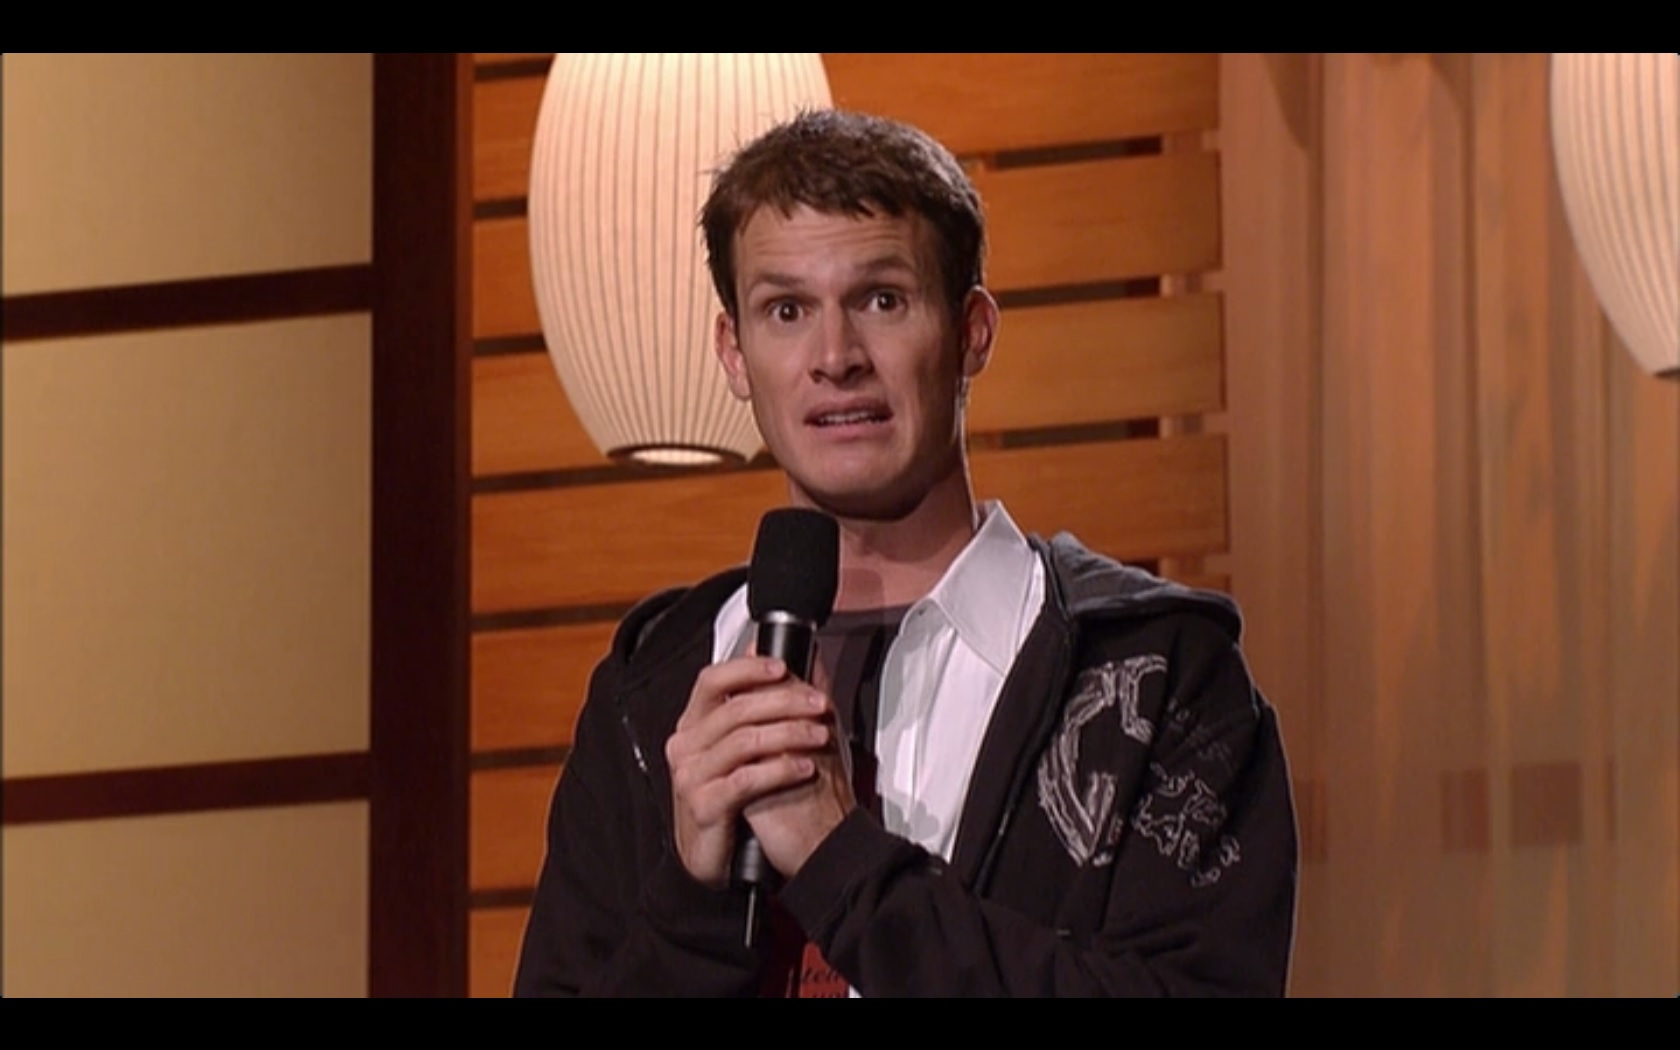 Fabreezing the Homeless – Daniel Tosh